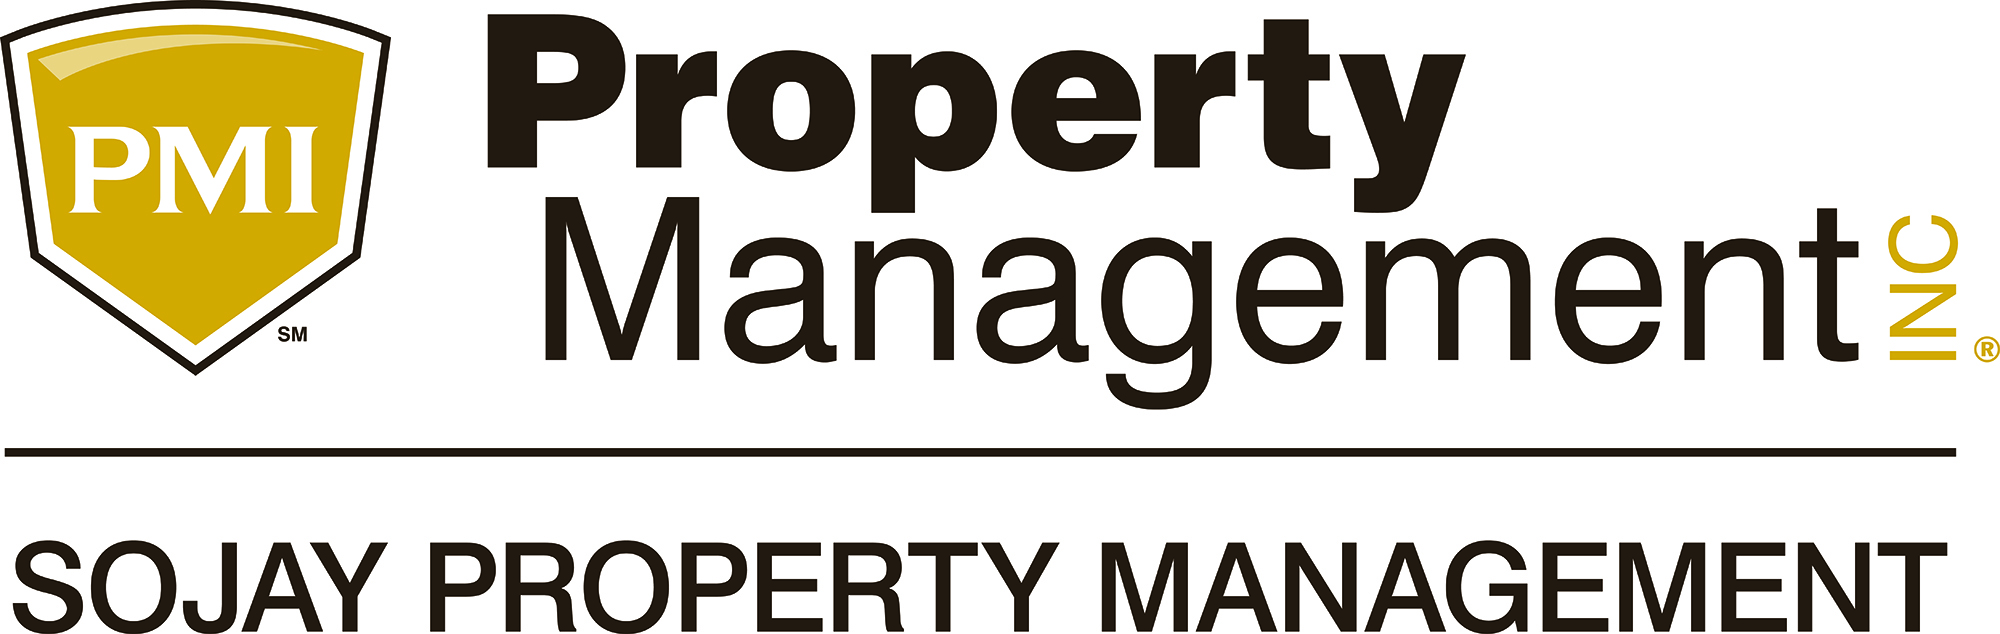 SoJay Property Management